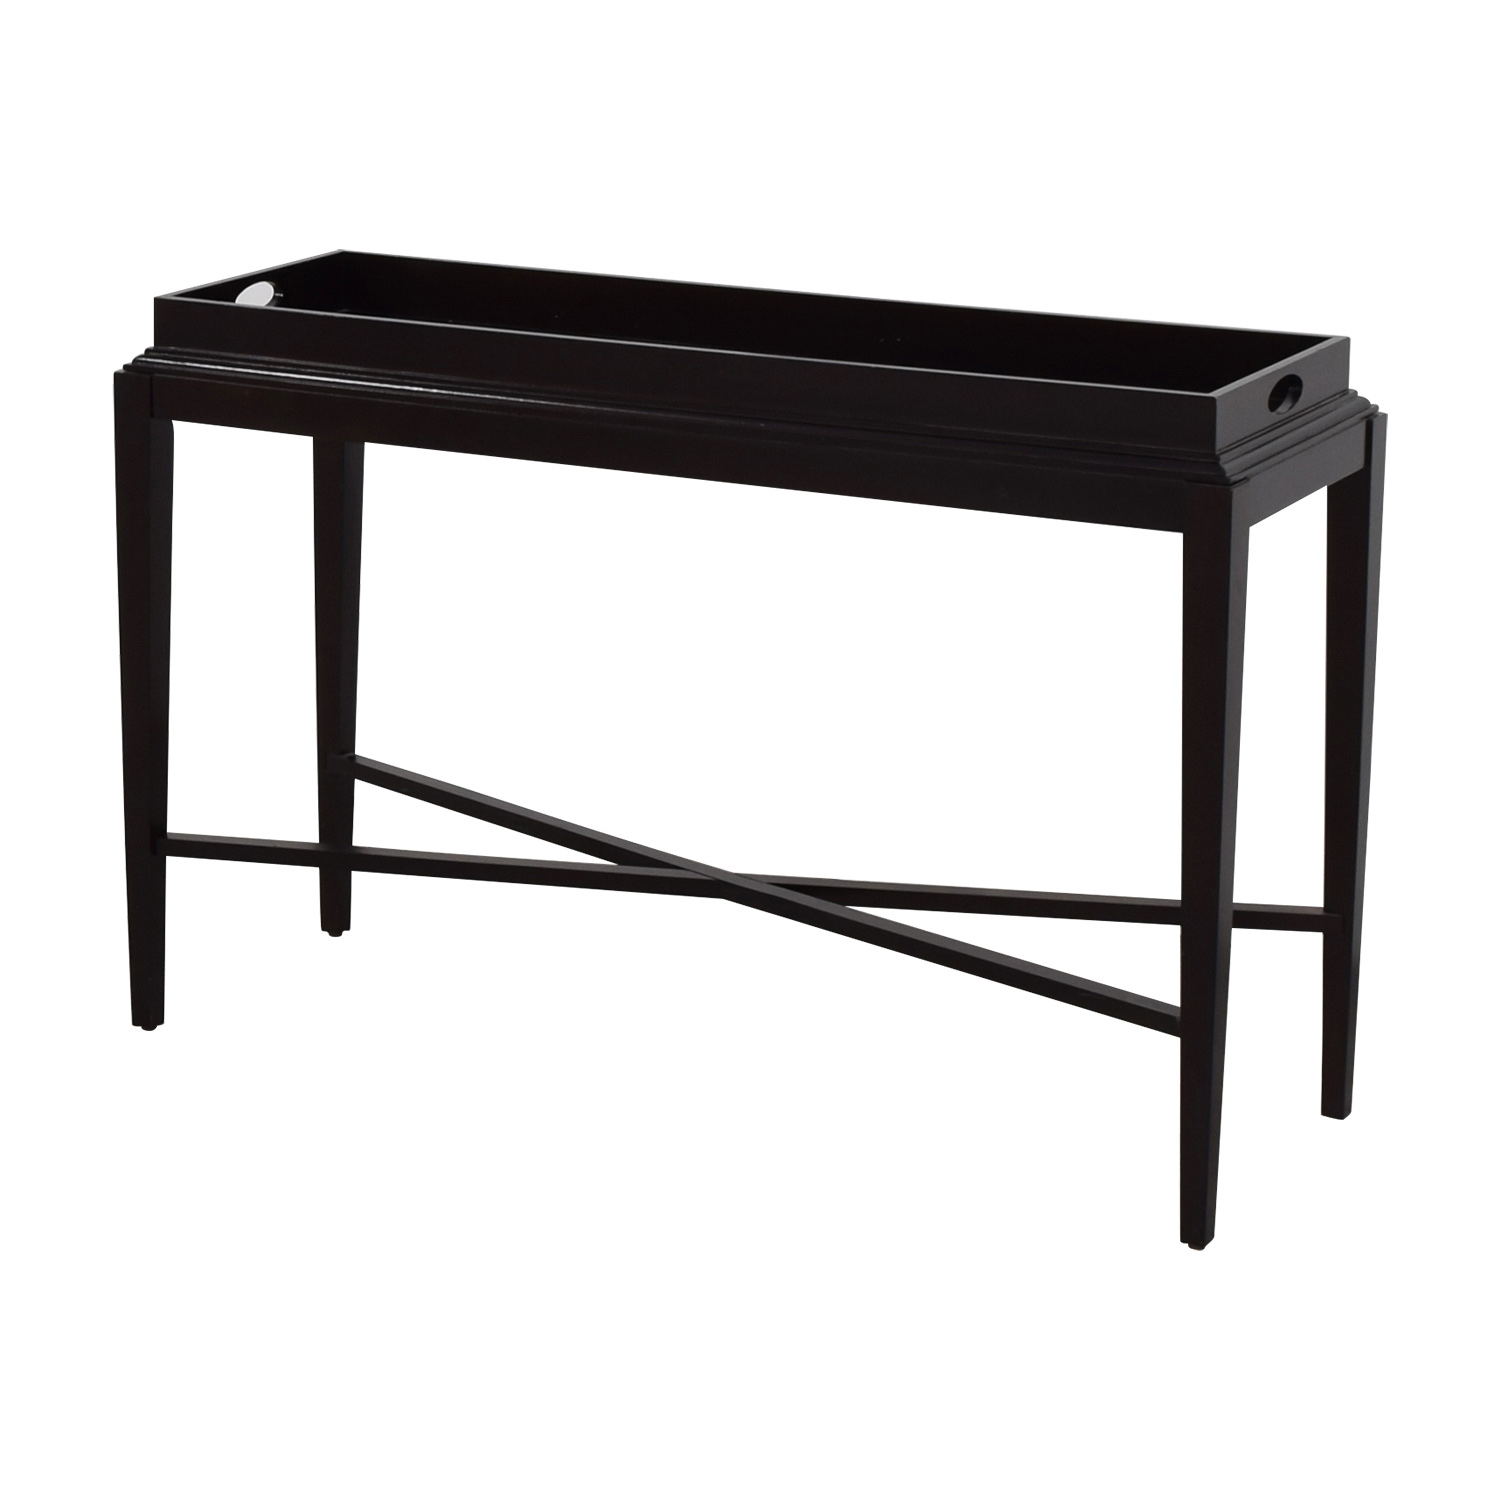 42 off black tray console table tables black tray console table geotapseo Choice Image